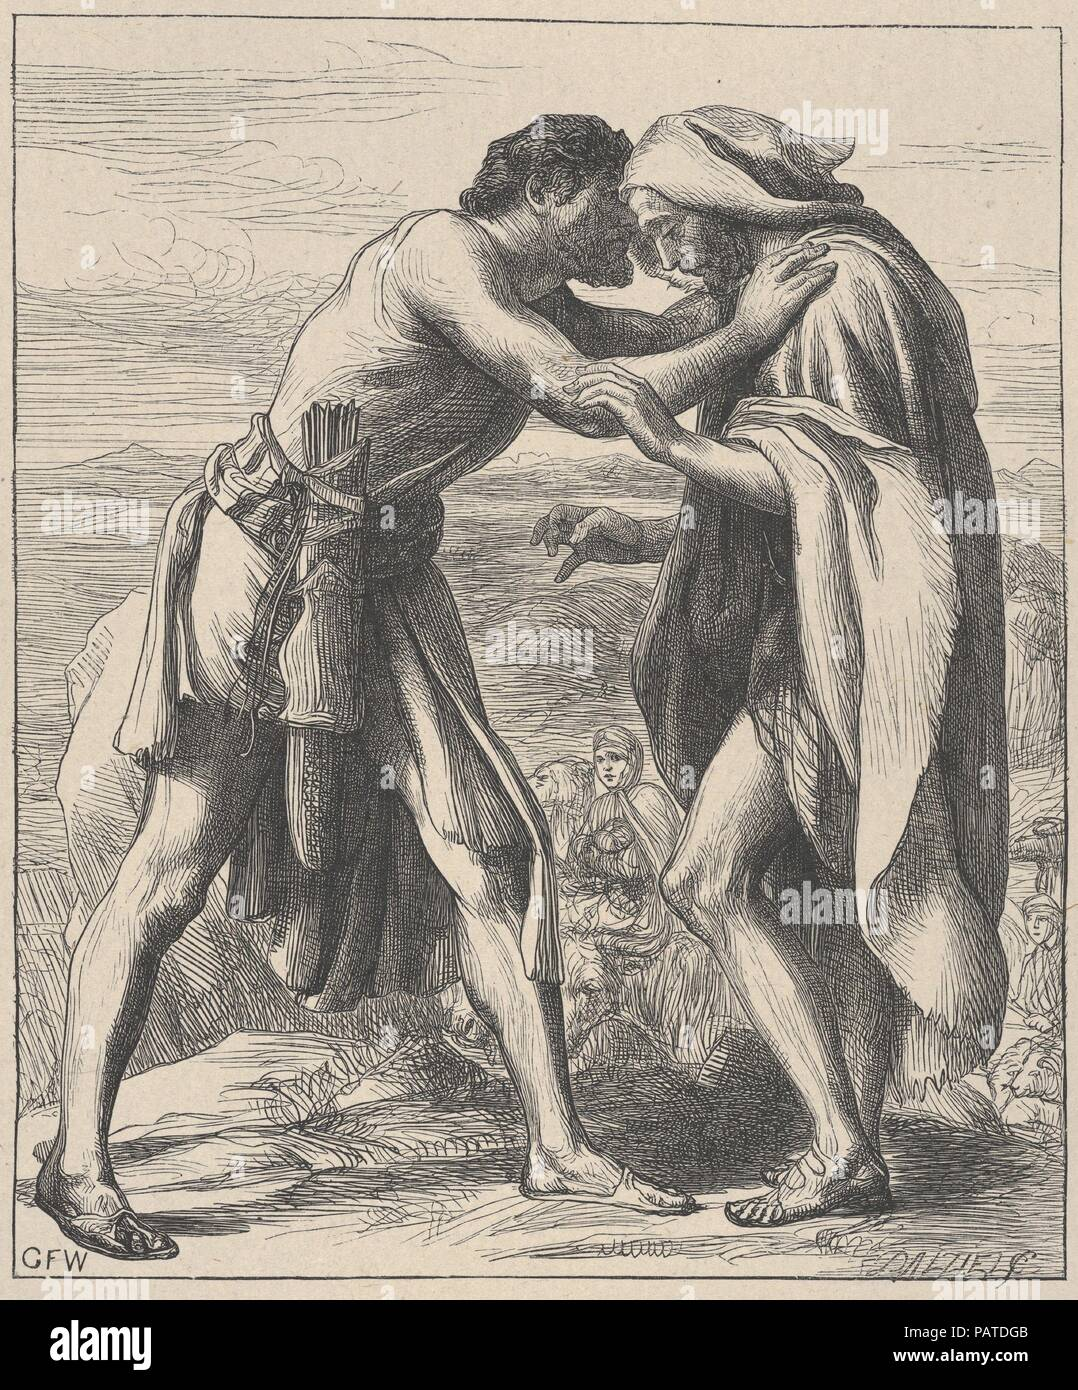 Esau Meeting Jacob (Dalziels' Bible Gallery). Artist: After George Frederic Watts (British, London 1817-1904 London). Dimensions: Image: 7 5/16 × 6 1/8 in. (18.5 × 15.6 cm)  India sheet: 9 1/2 × 8 1/16 in. (24.1 × 20.5 cm)  Mount: 16 7/16 in. × 12 15/16 in. (41.8 × 32.8 cm). Engraver: Dalziel Brothers (British, active 1839-1893). Printer: Camden Press (British, London). Publisher: Scribner and Welford (New York, NY). Date: 1881. Museum: Metropolitan Museum of Art, New York, USA. Stock Photo